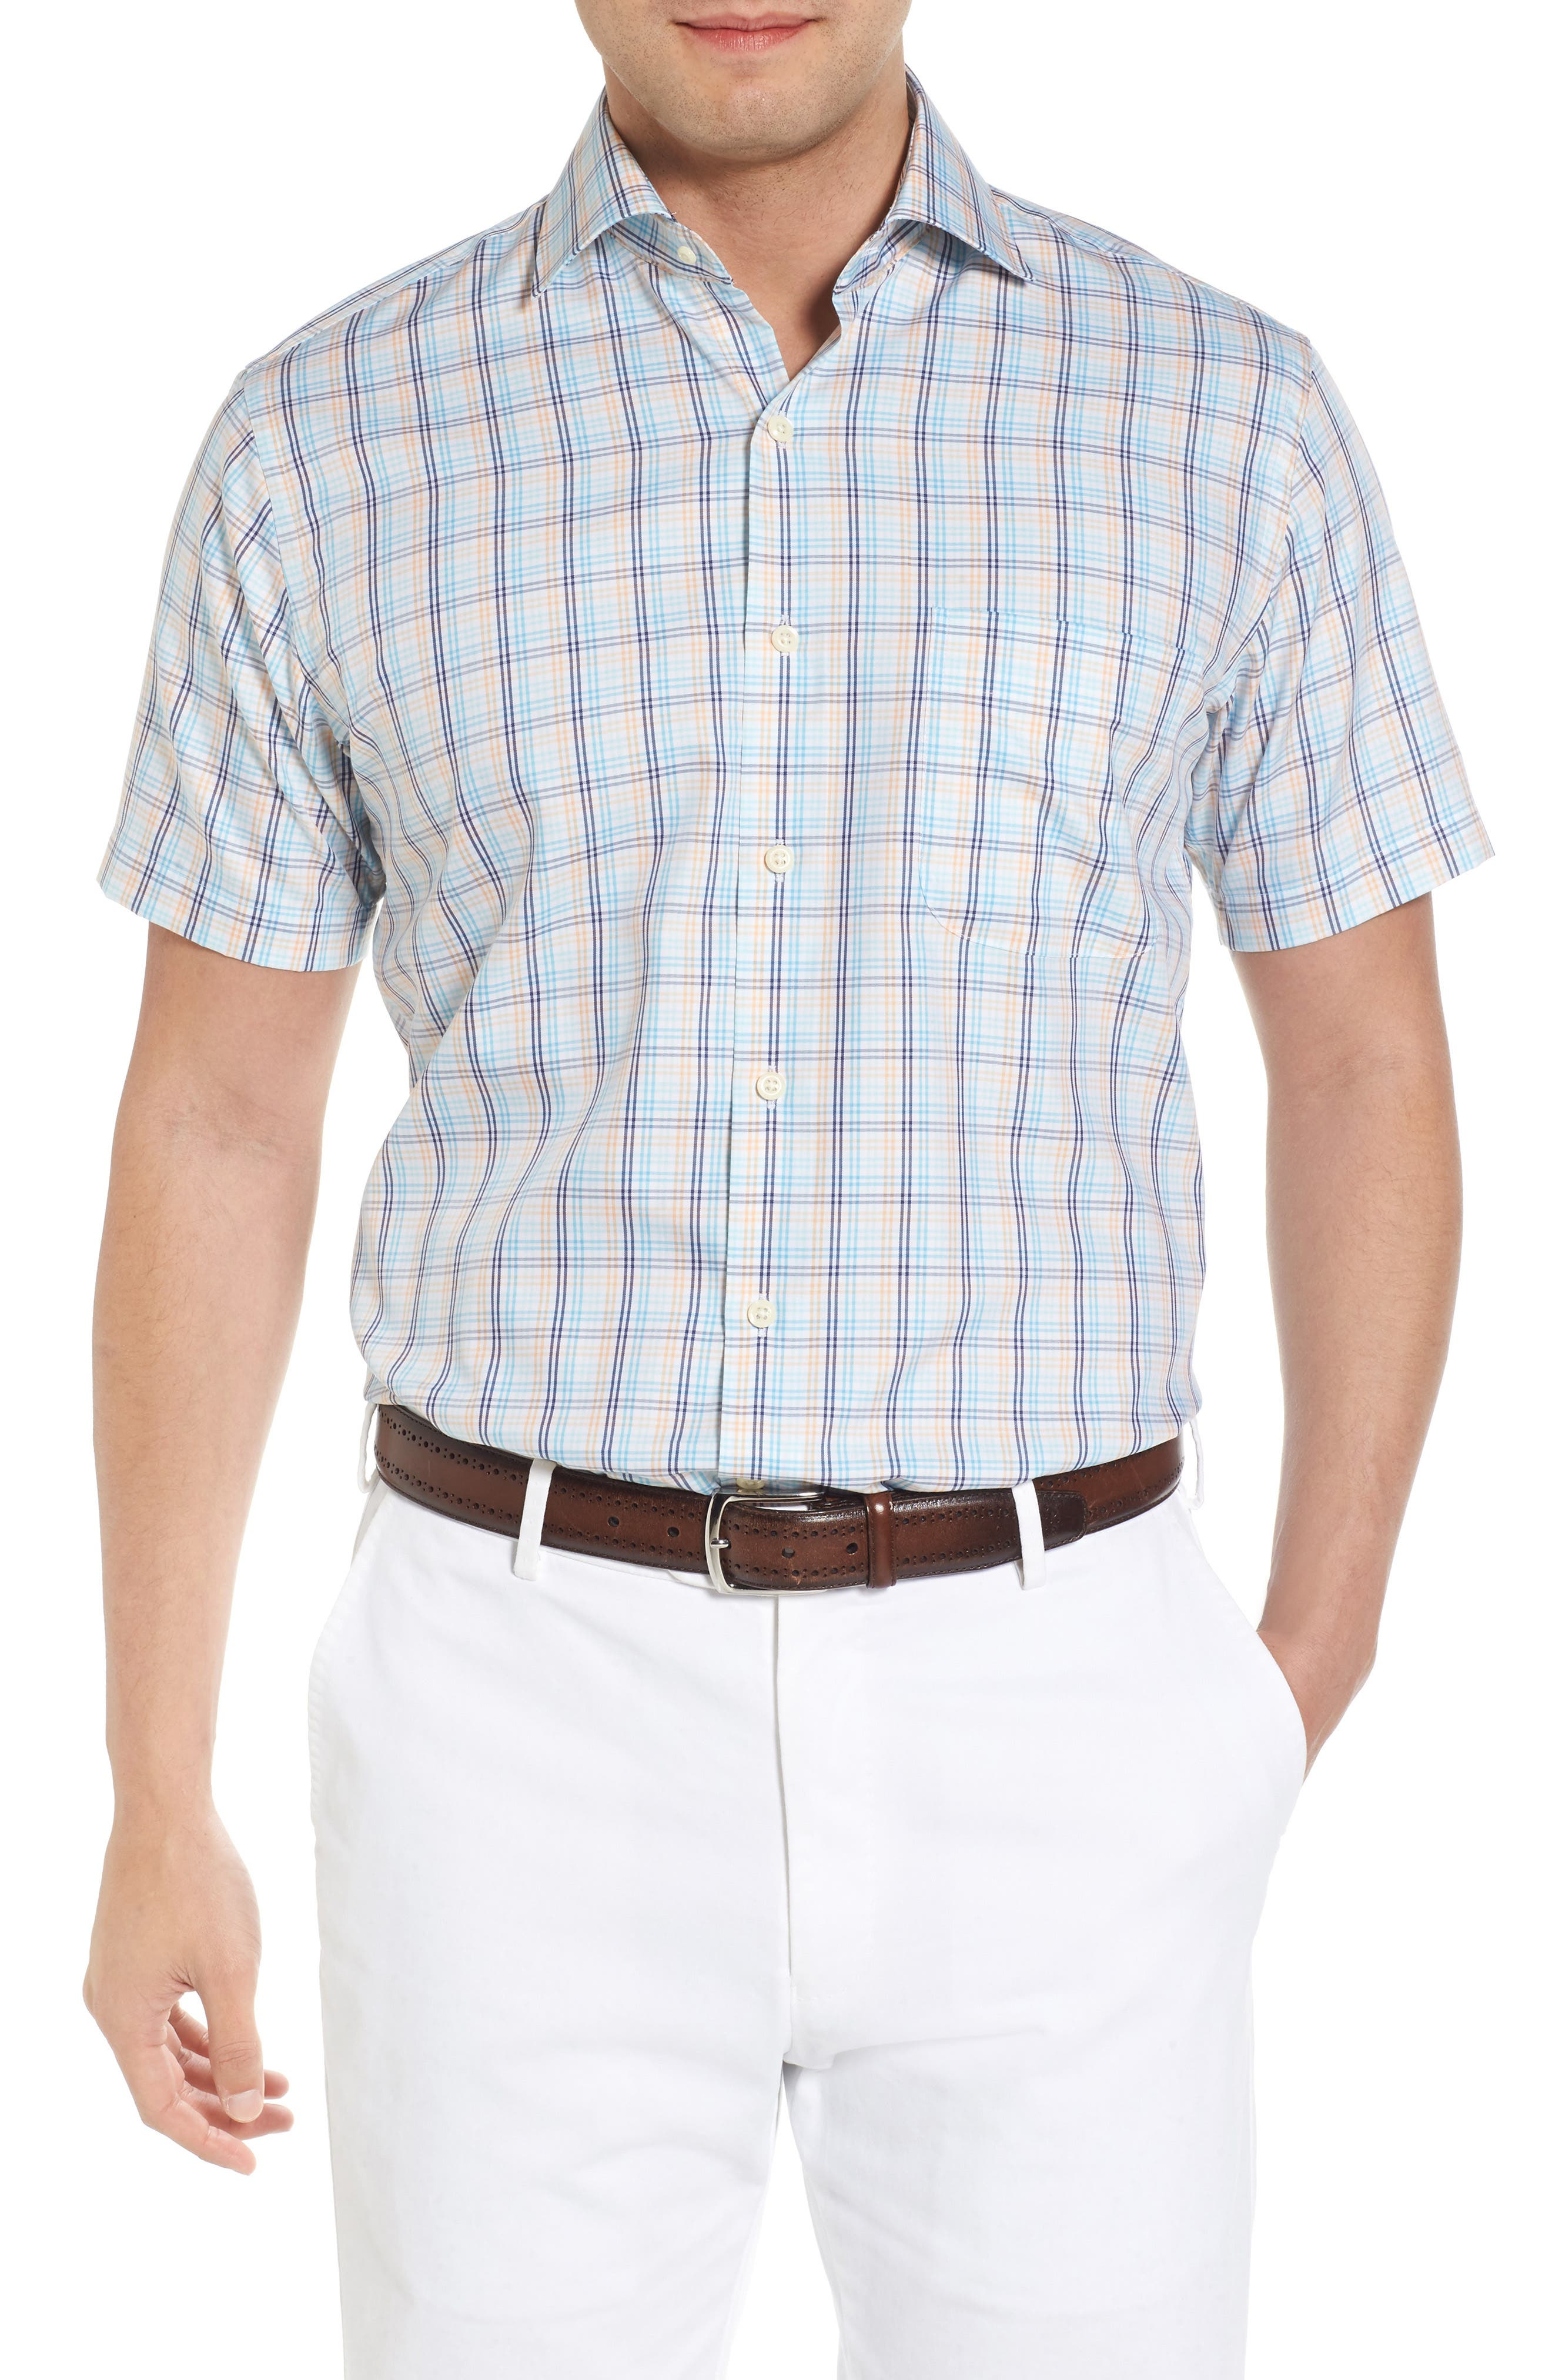 Crown Soft Daybreak Regular Fit Check Sport Shirt,                             Main thumbnail 1, color,                             Dreamsicle